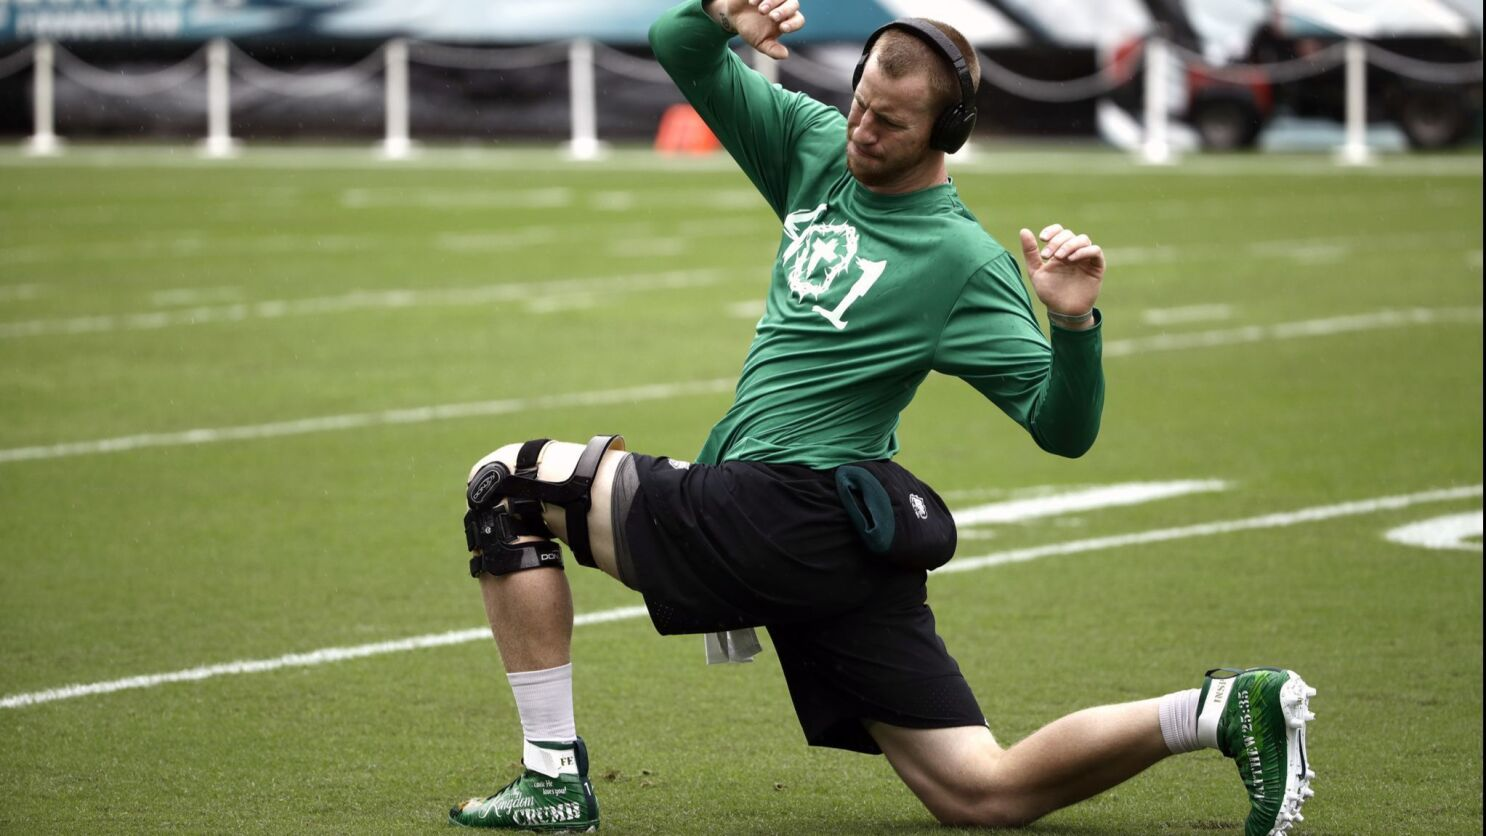 Carson Wentz Back Update Is Not A Setback The San Diego Union Tribune